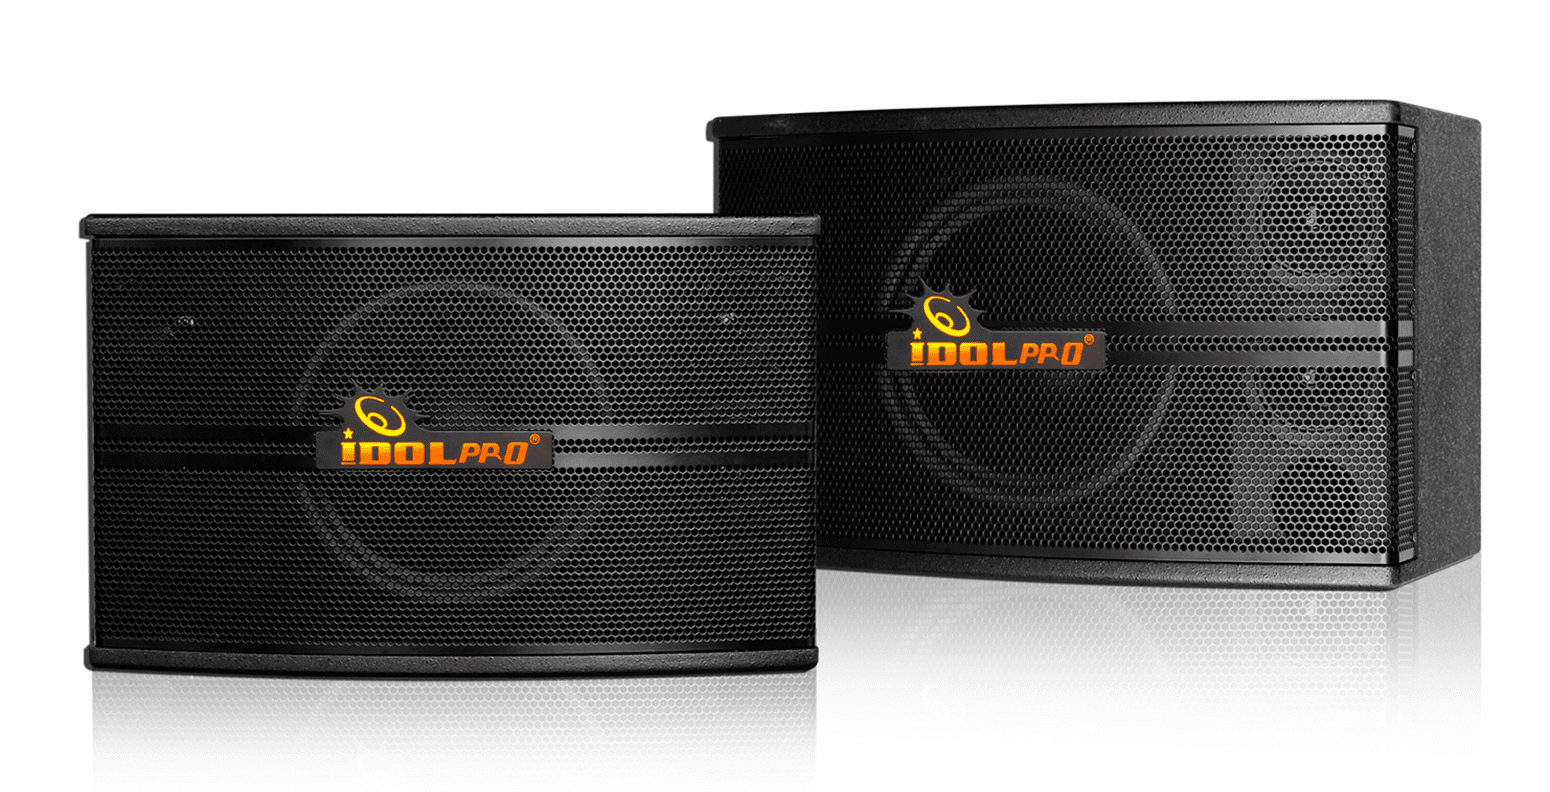 "IDOLpro IPS-590 500W Professional High Fidelity Vocal Karaoke Speakers <font color="" orange""><b>NEW 2019</b></font>"